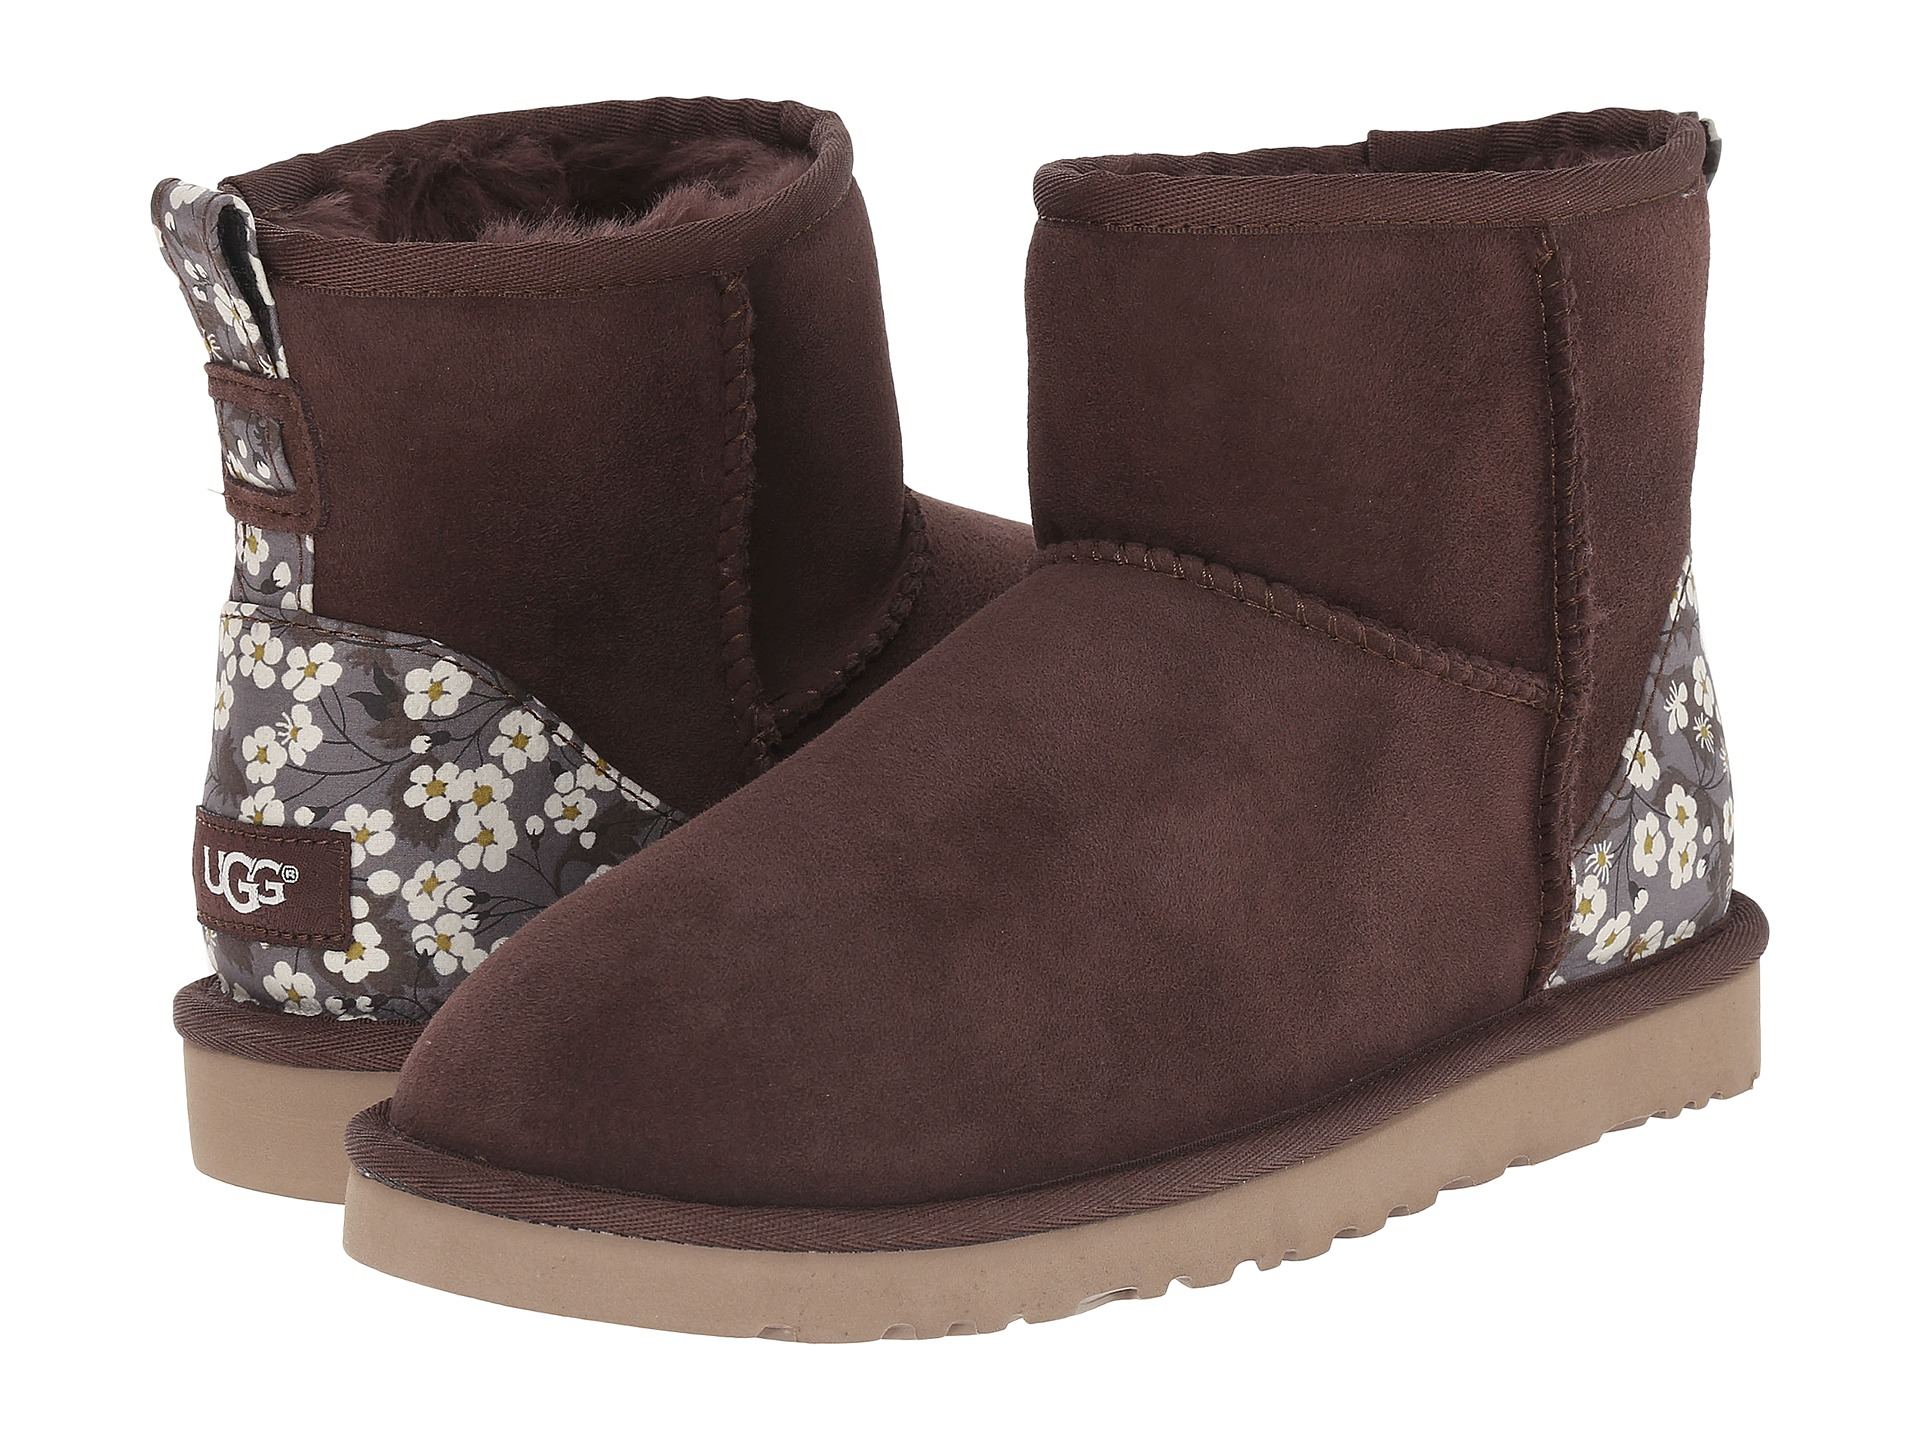 UGG Boots Womens - UGG Classic Mini Liberty Brown